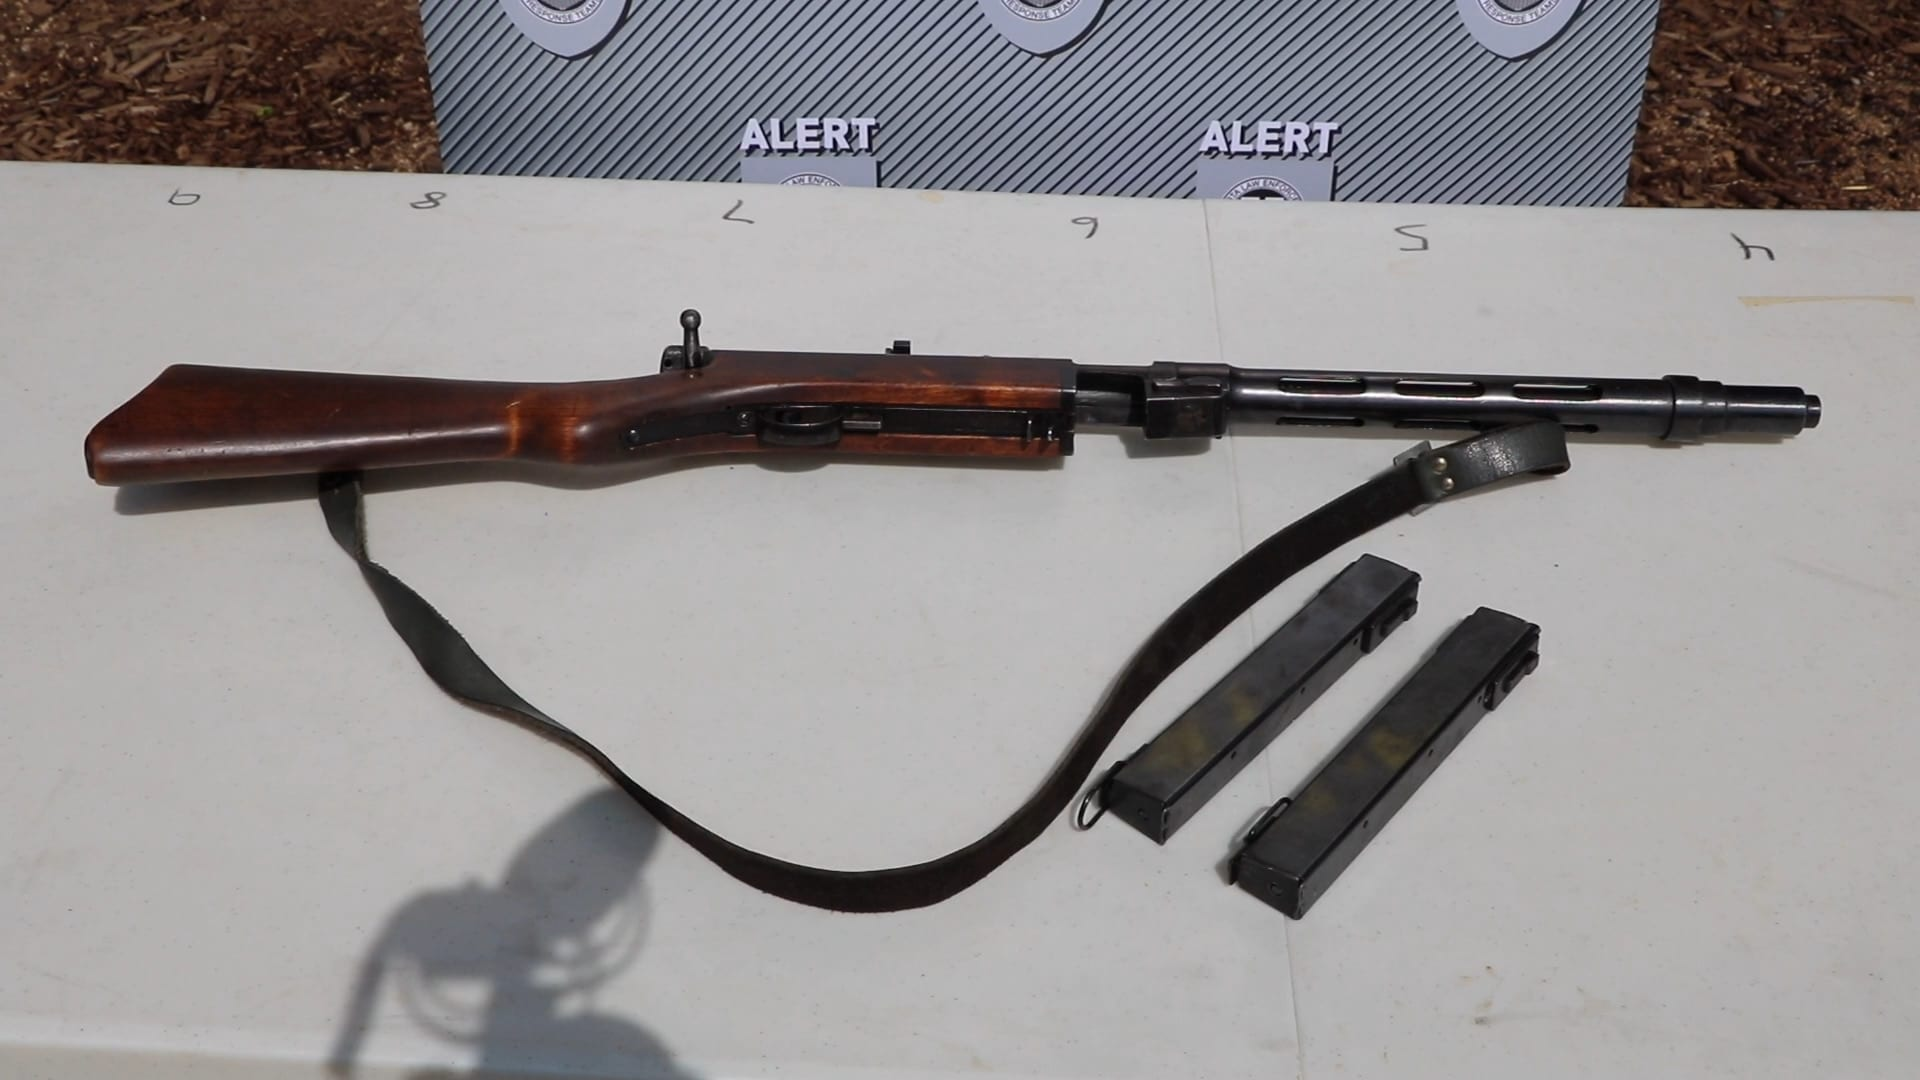 Police advise the Suomi, a Finnish subgun in 9mm, was modified but did not elaborate as to what was done to it.